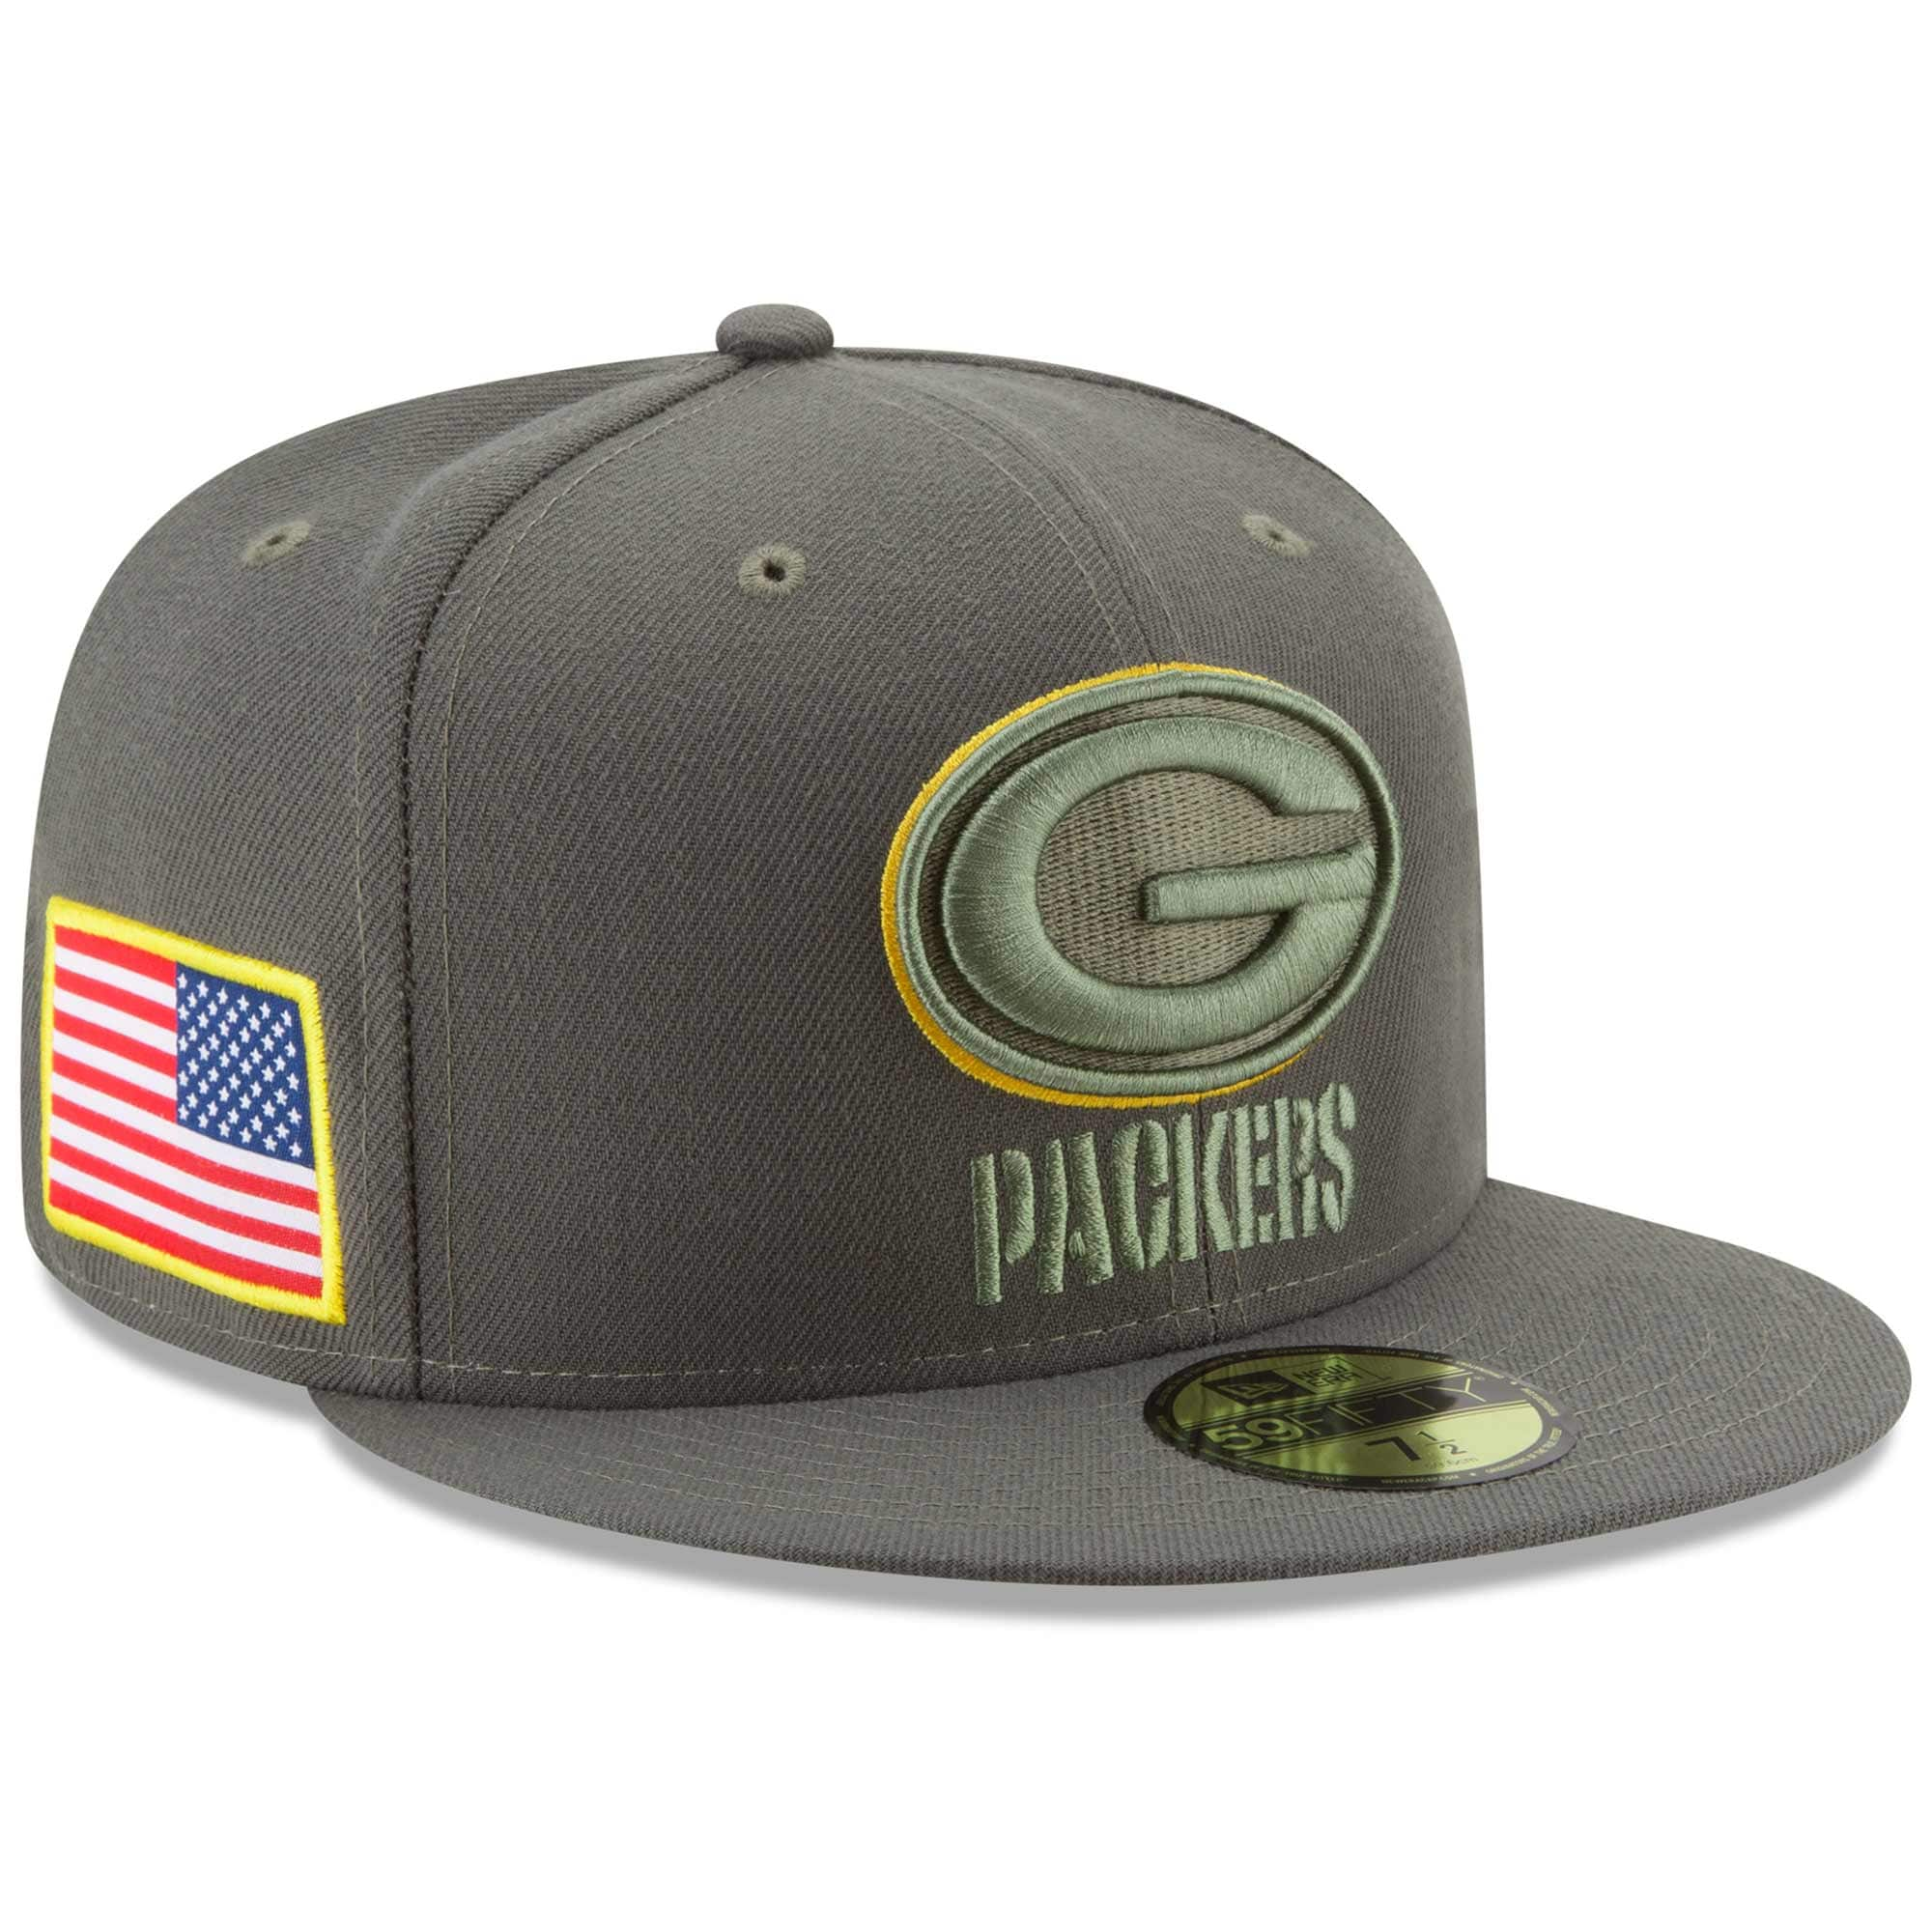 Green Bay Packers New Era 2017 Salute To Service 59FIFTY Fitted Hat - Olive